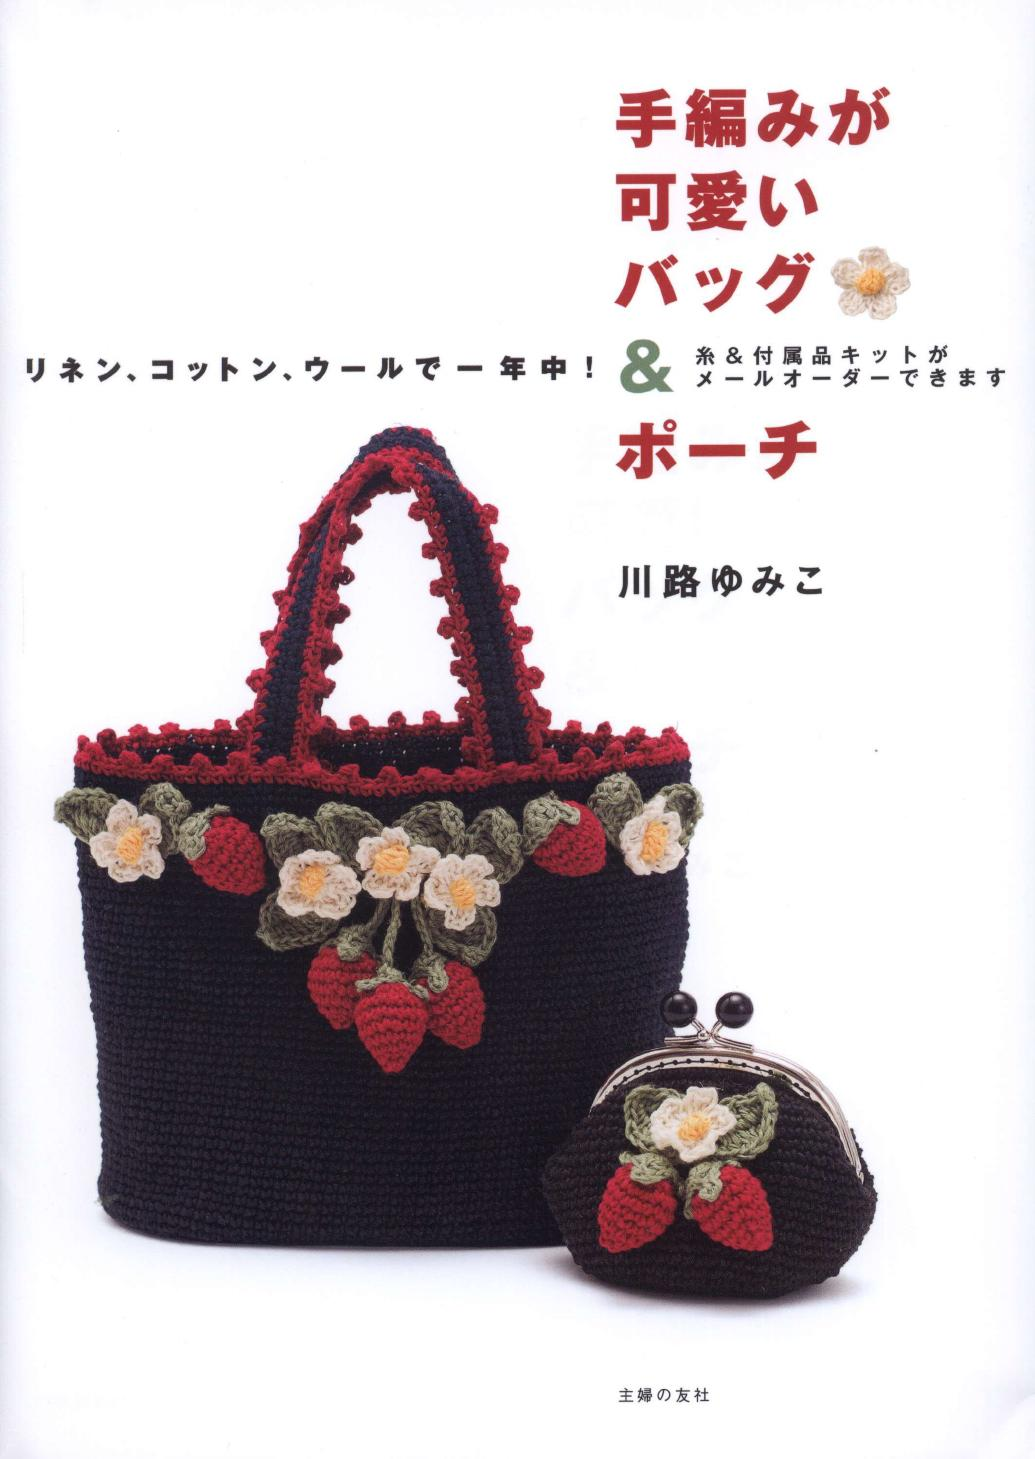 Crochet and knit cute bag and pouch